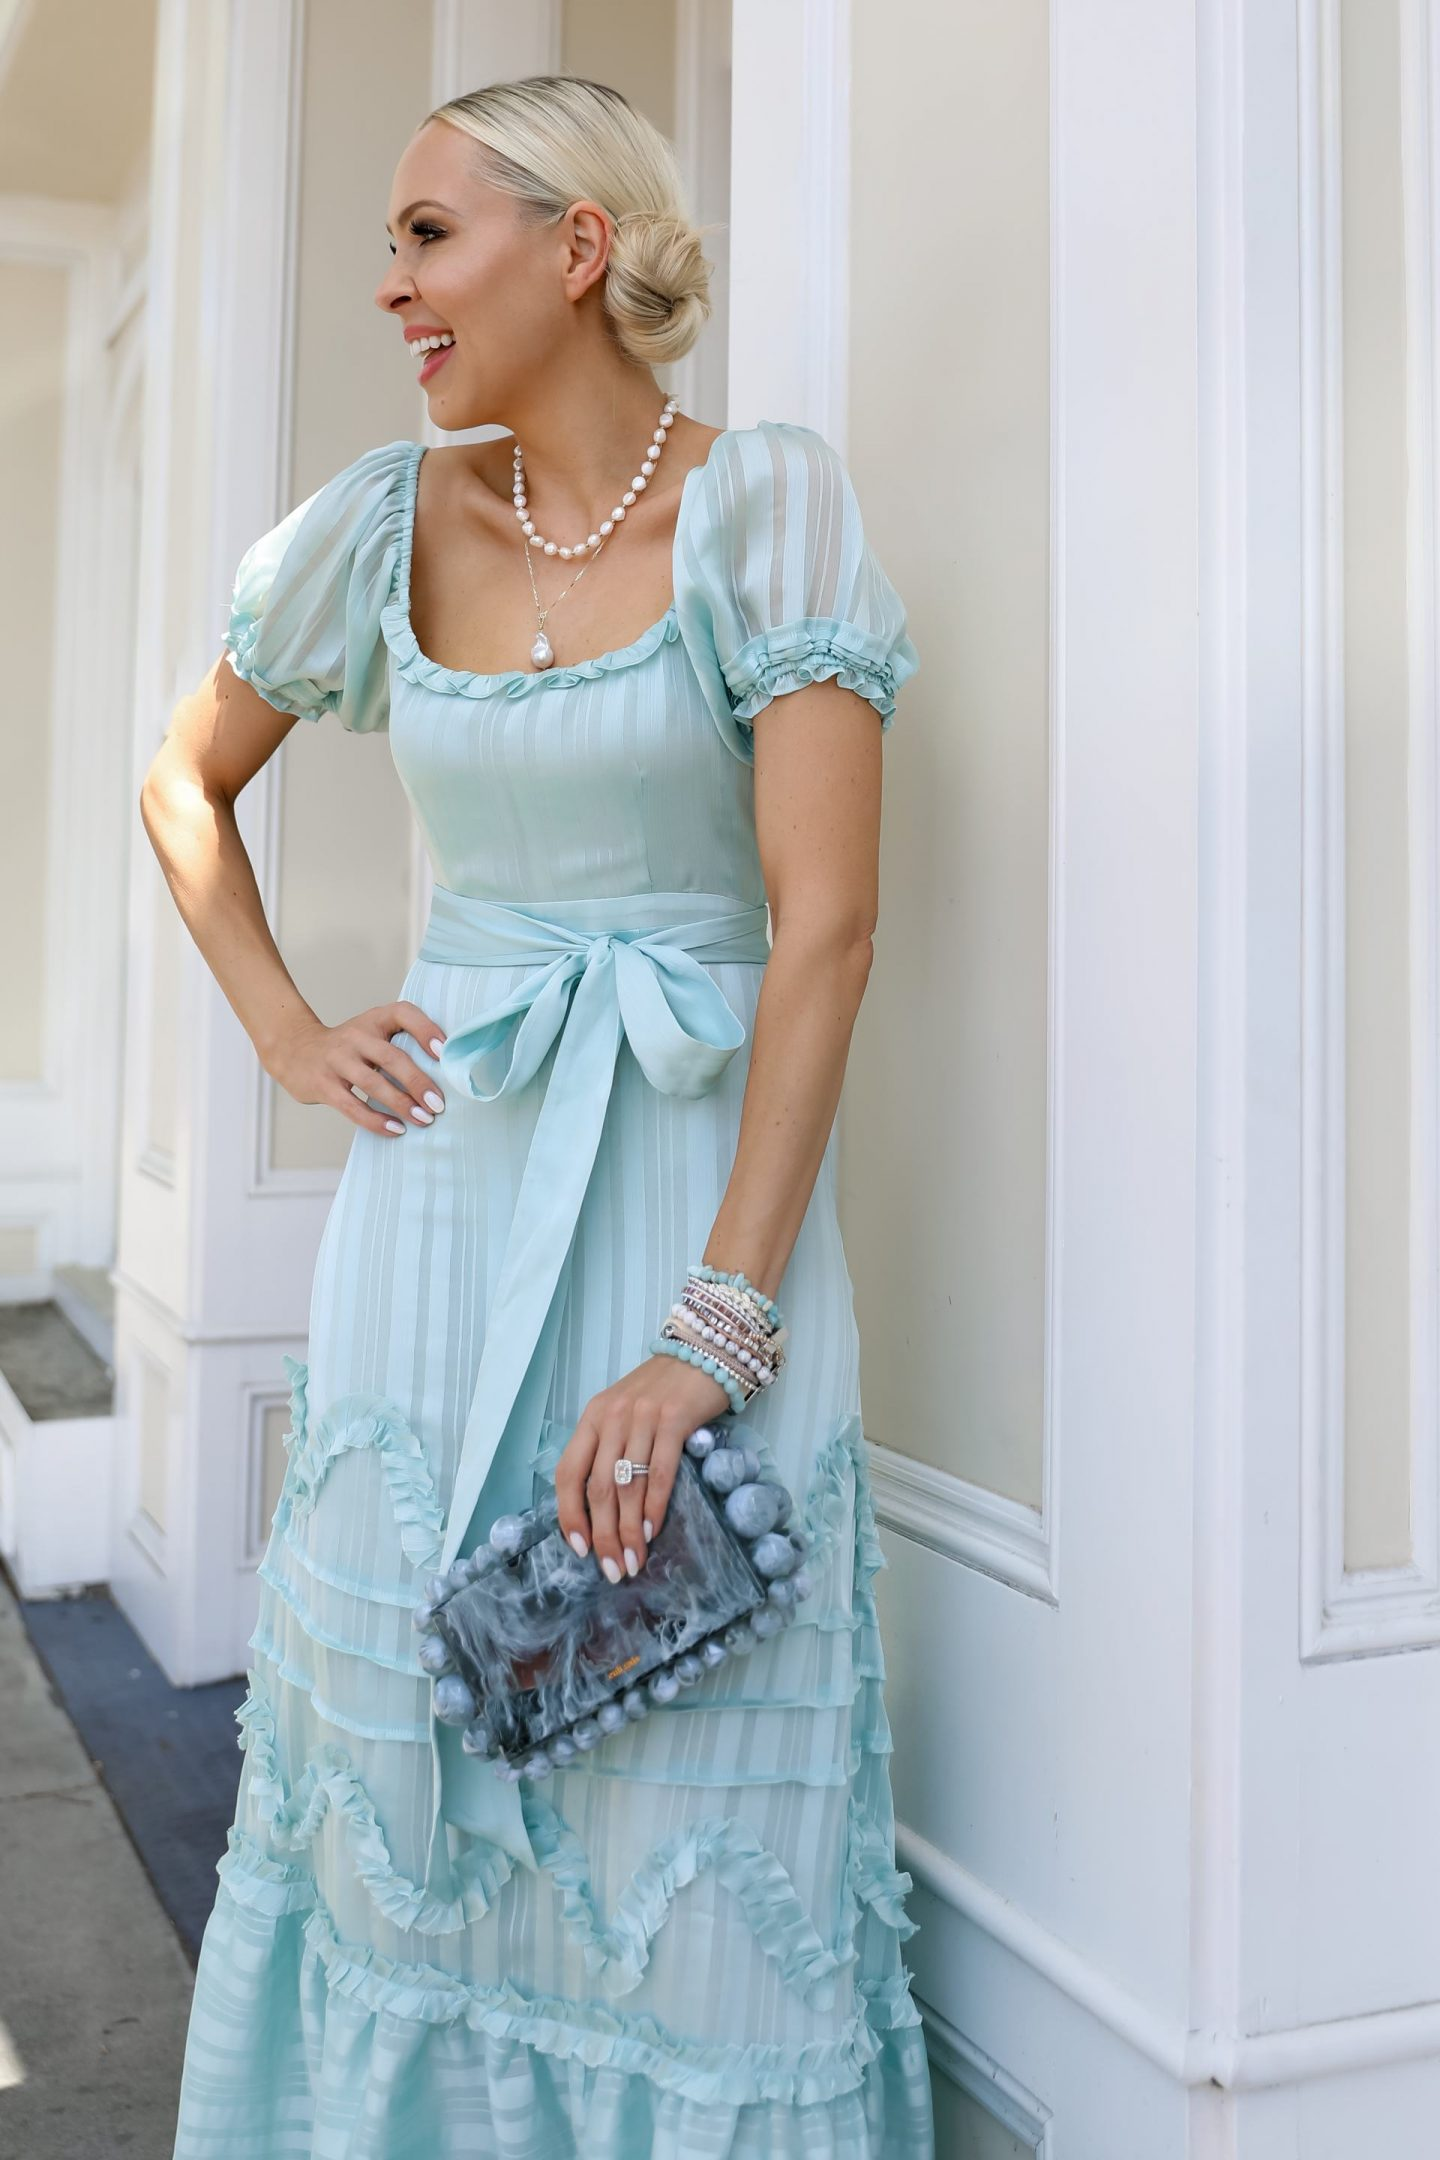 Bridgerton style with boho accessories, wedding guest inspiration by Lombard & Fifth Veronica Levy.